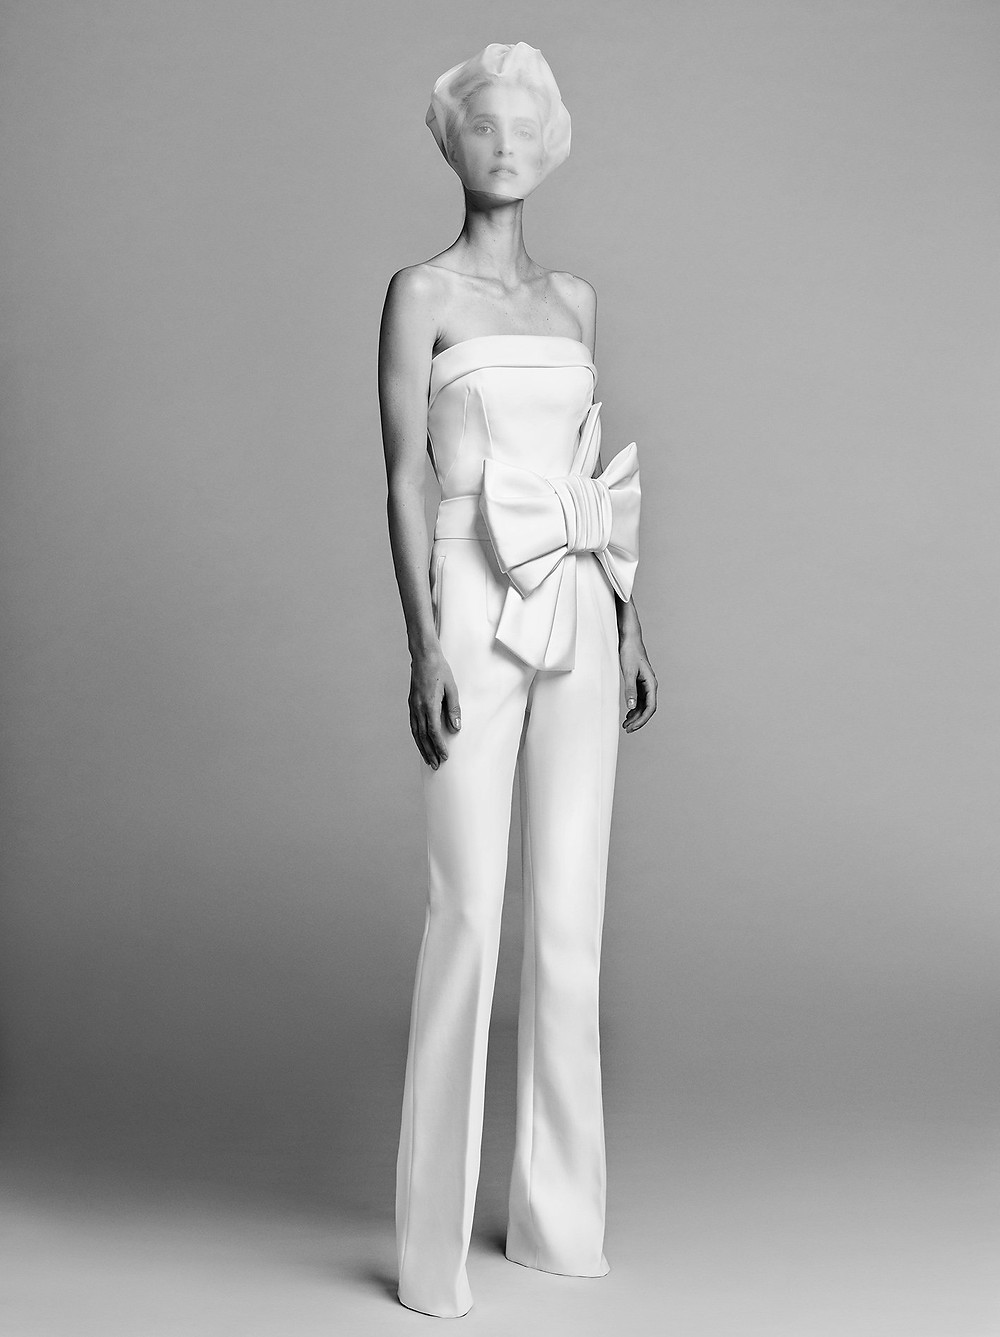 A Viktor & Rolf strapless linen wedding jumpsuit or pantsuit with a bow